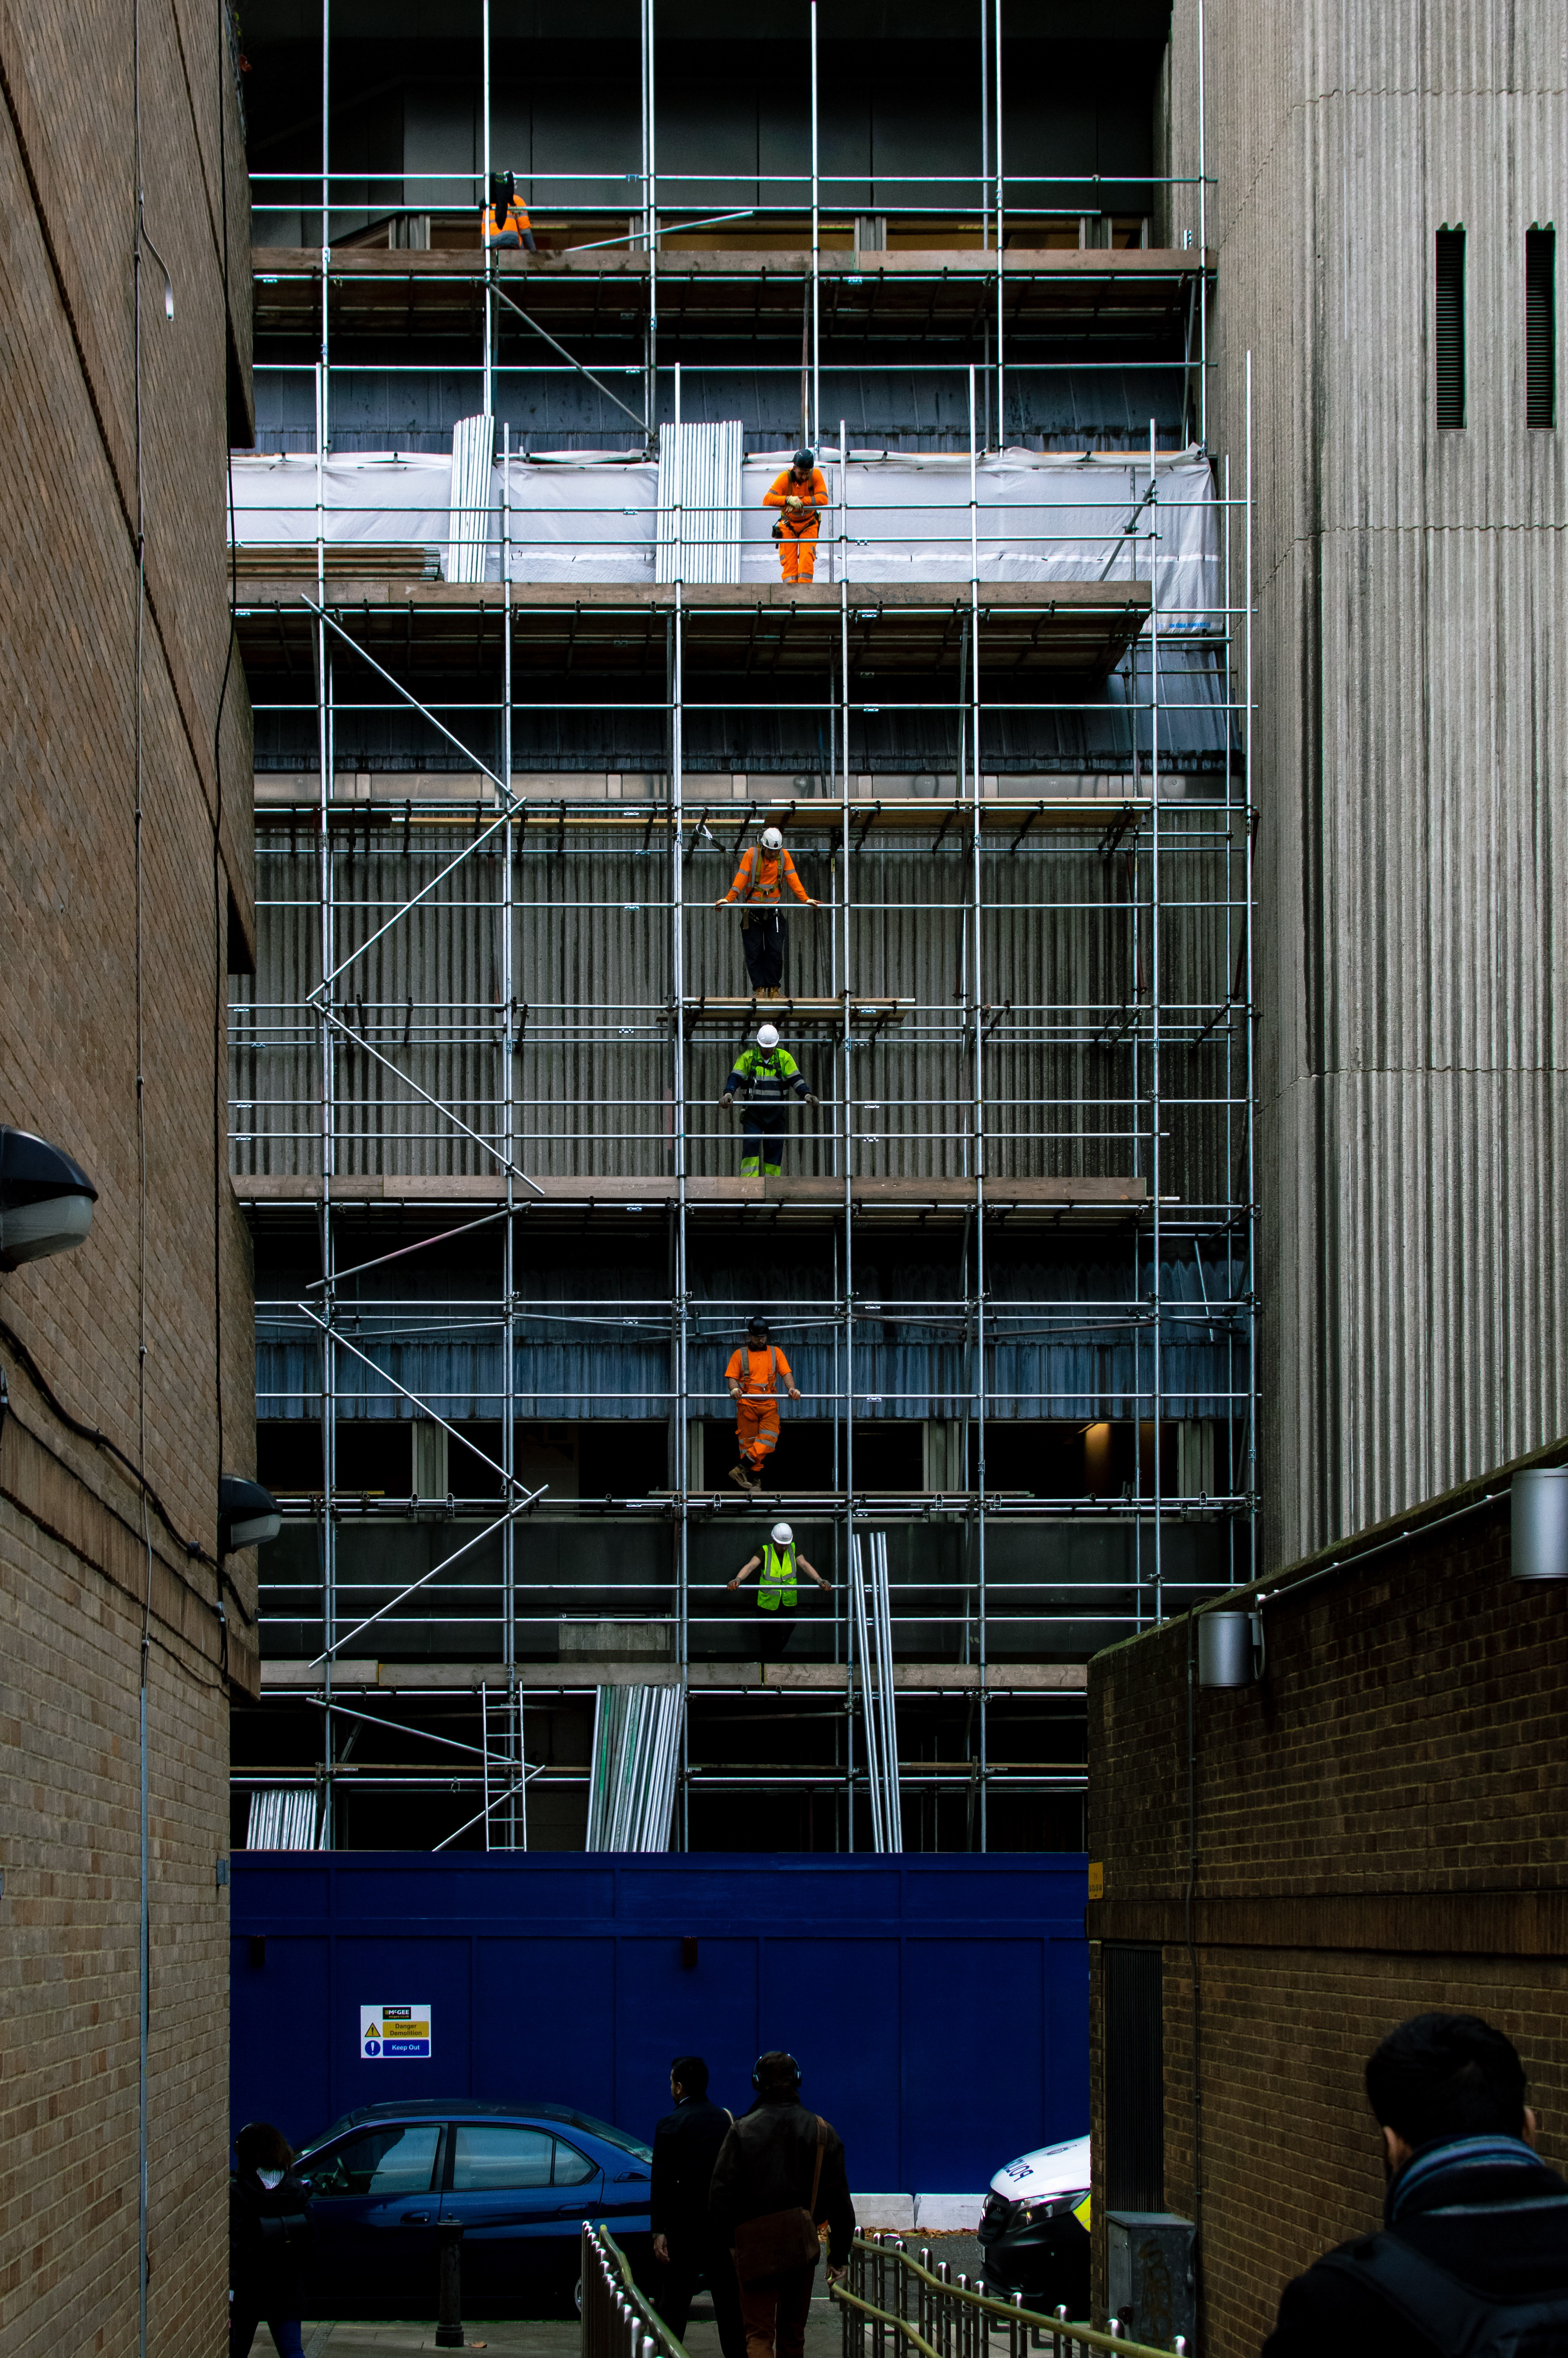 Construction workers on scaffolding.